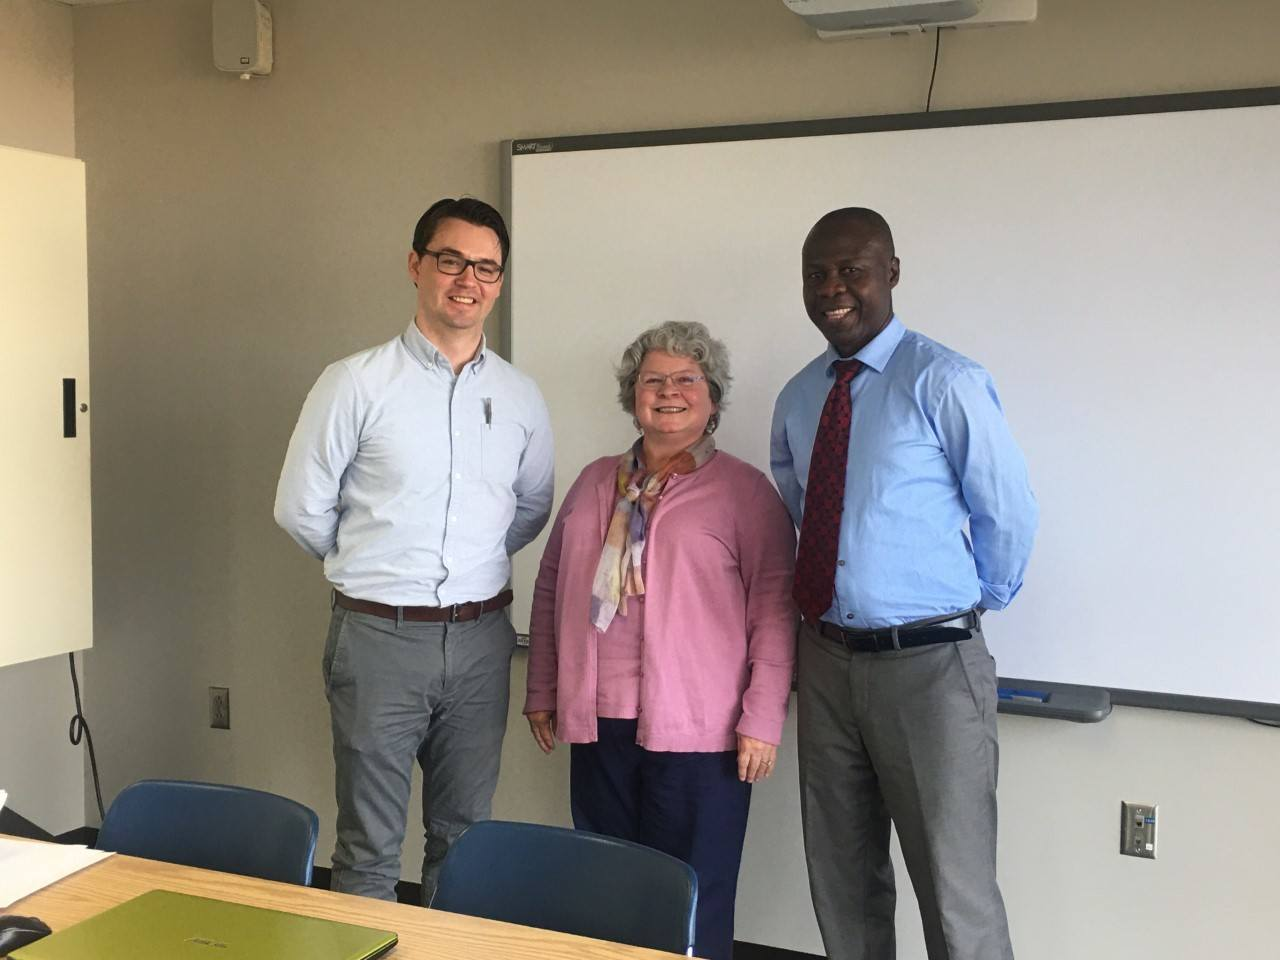 Stephen Ohene-Larbi with Dan Bommarito and Sue Wood